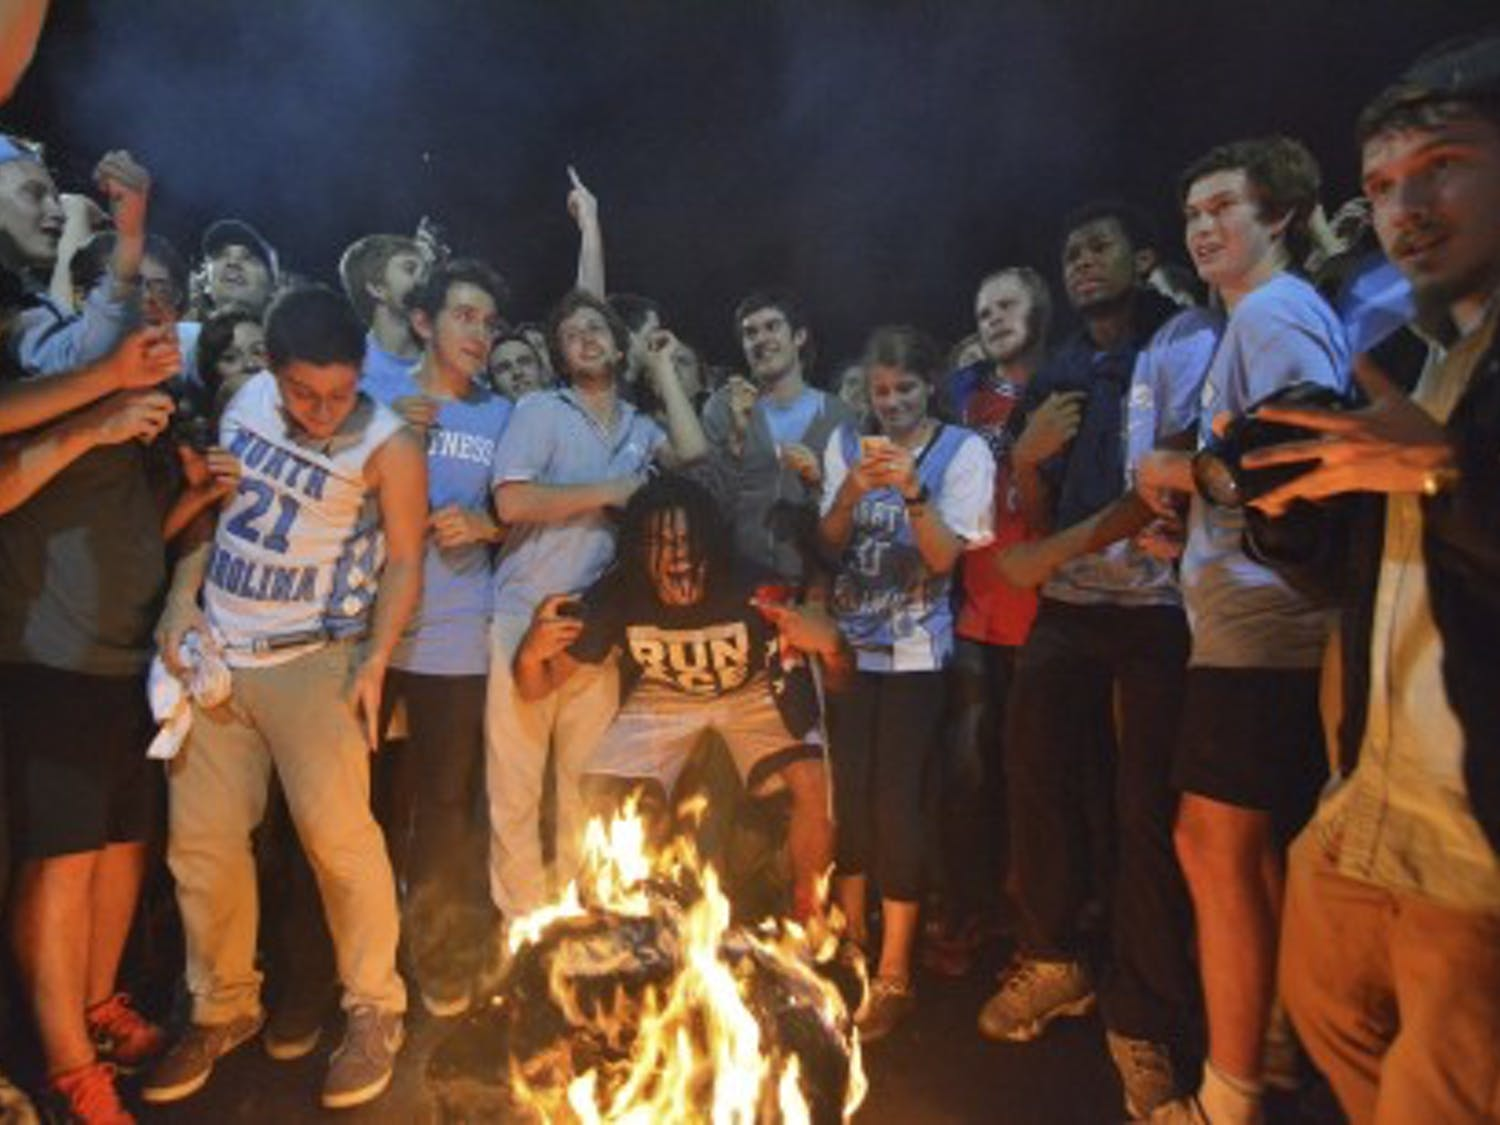 Excited fans jump over a bonfire on Franklin Street after North Carolina beat Duke in men's basketball two years ago.